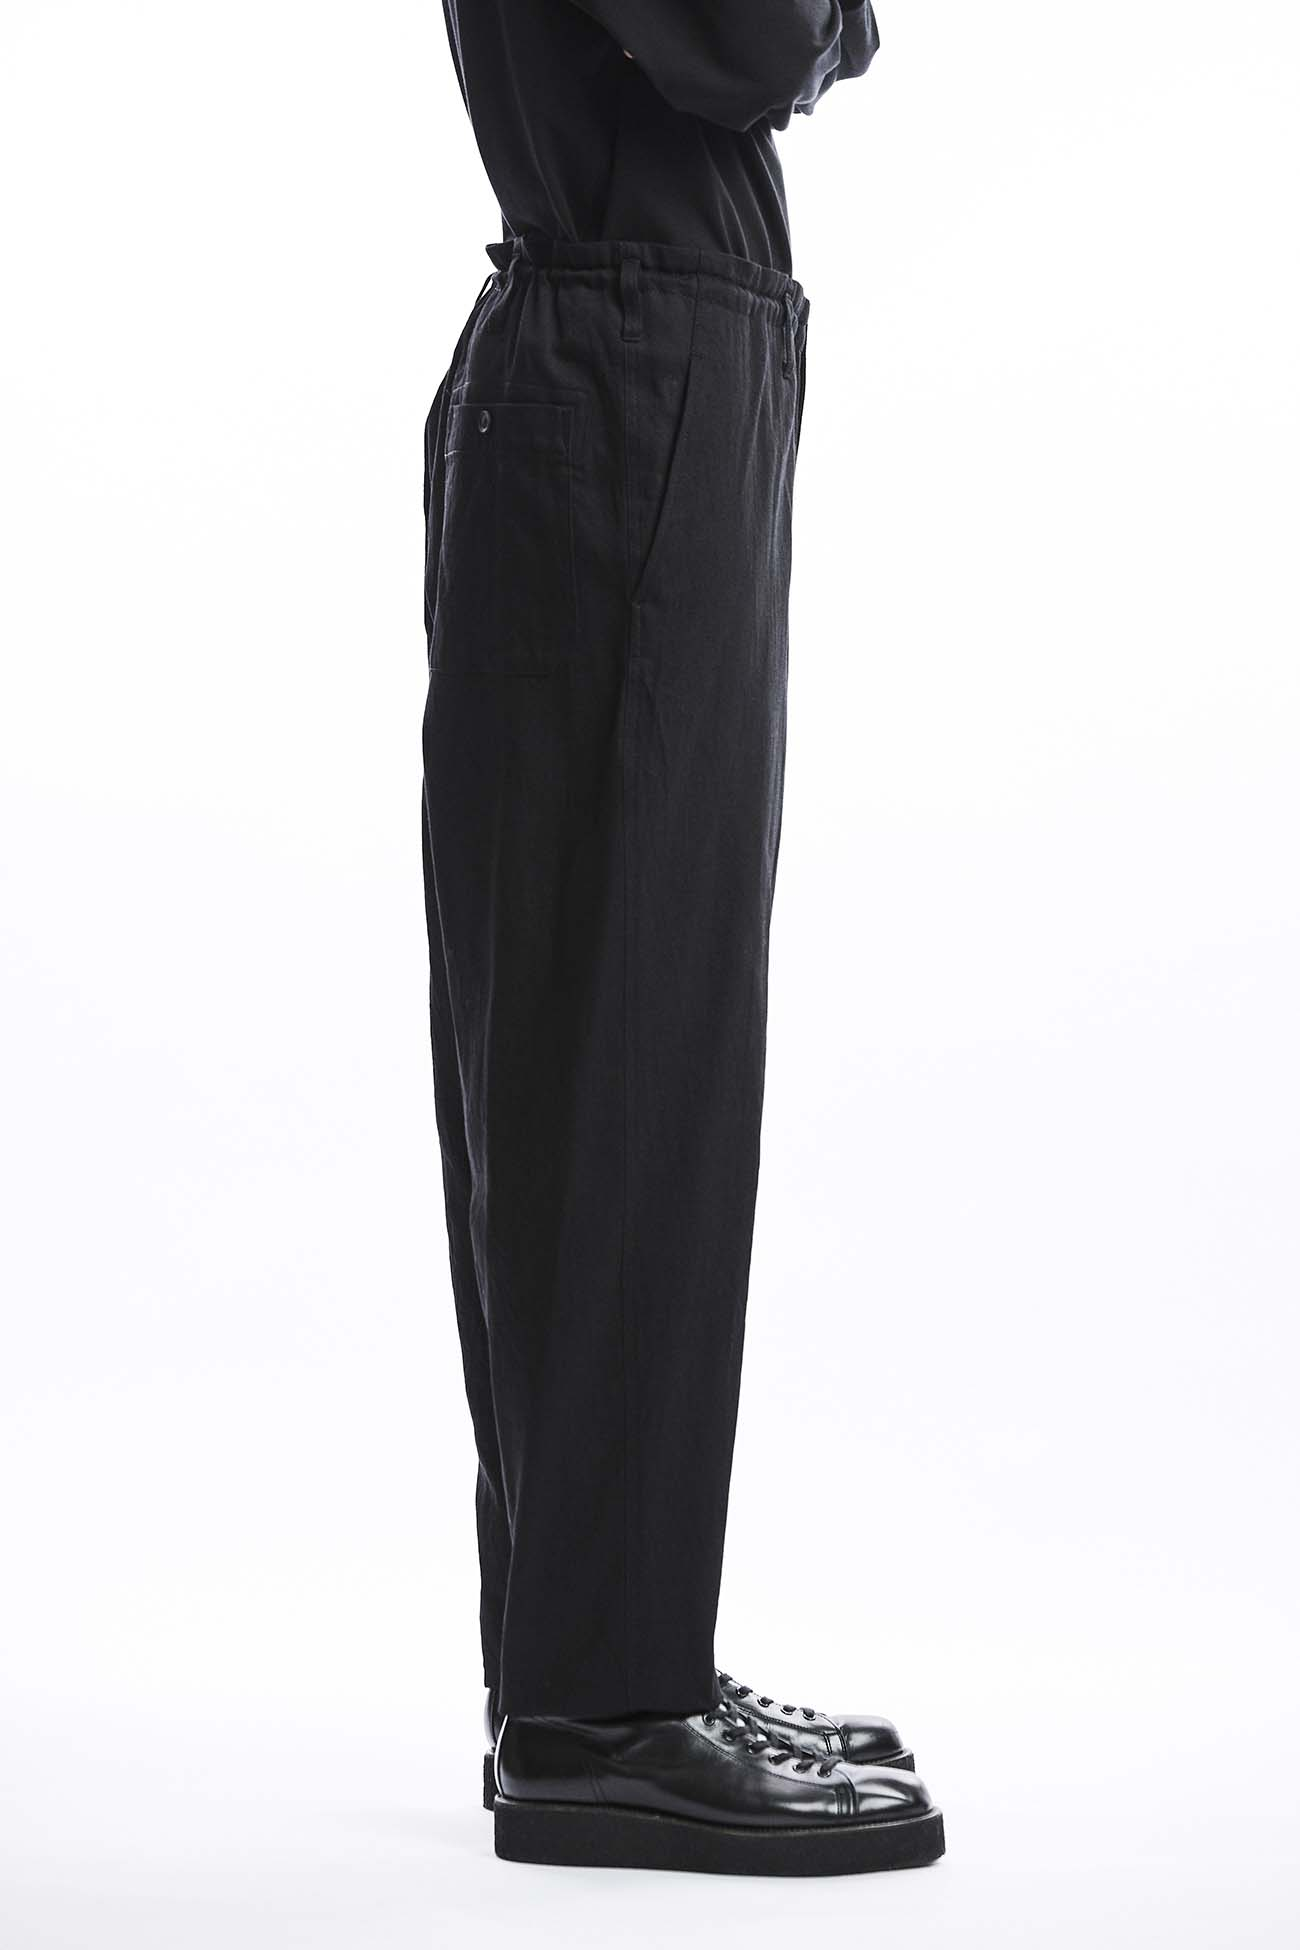 W/RY TWILL COIN POCKET PANTS